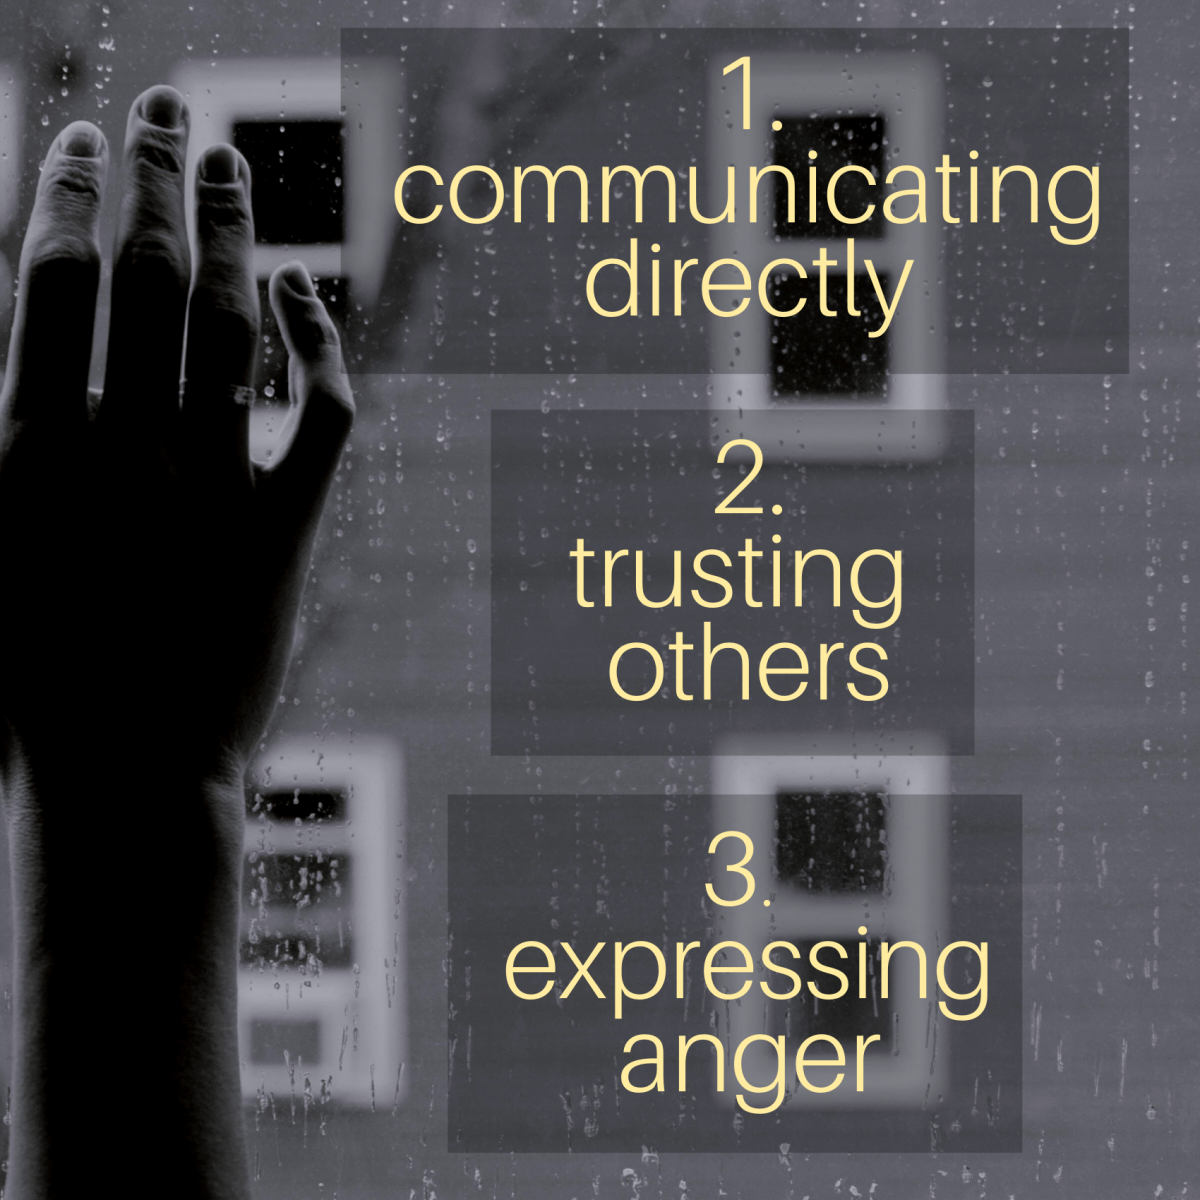 1. Communicating directly. 2. Trusting others. 3. Expressing anger.